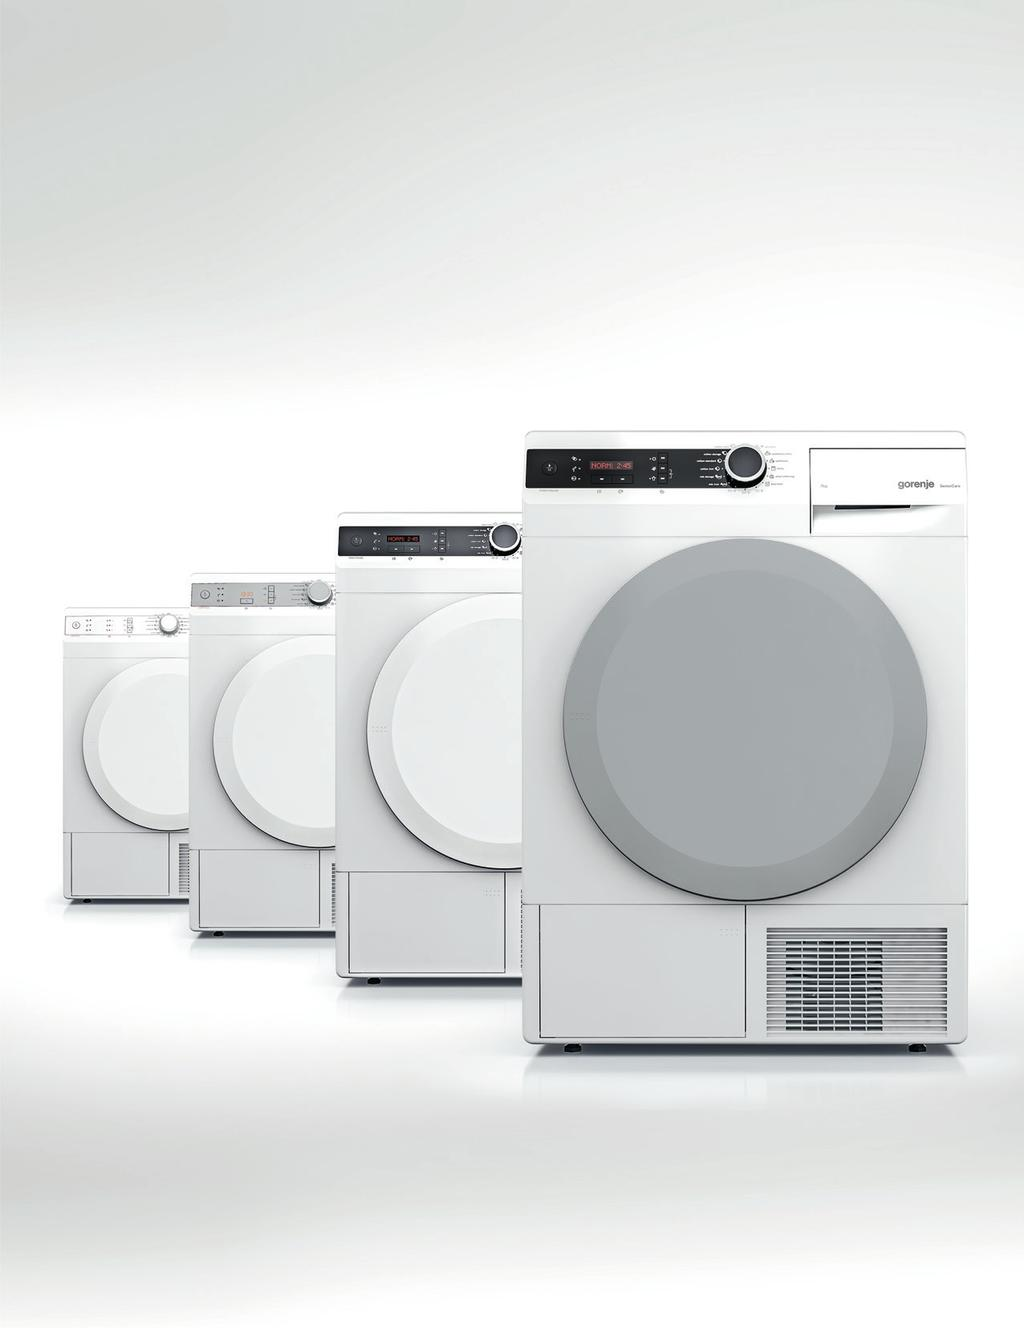 One For All You Are Sensocare Washing Machines And Tumble Dryers Pdf Front Load Dryer Furthermore Whirlpool Thermostat Wiring Diagram I 15 New Generation Gorenje Feel The Softness